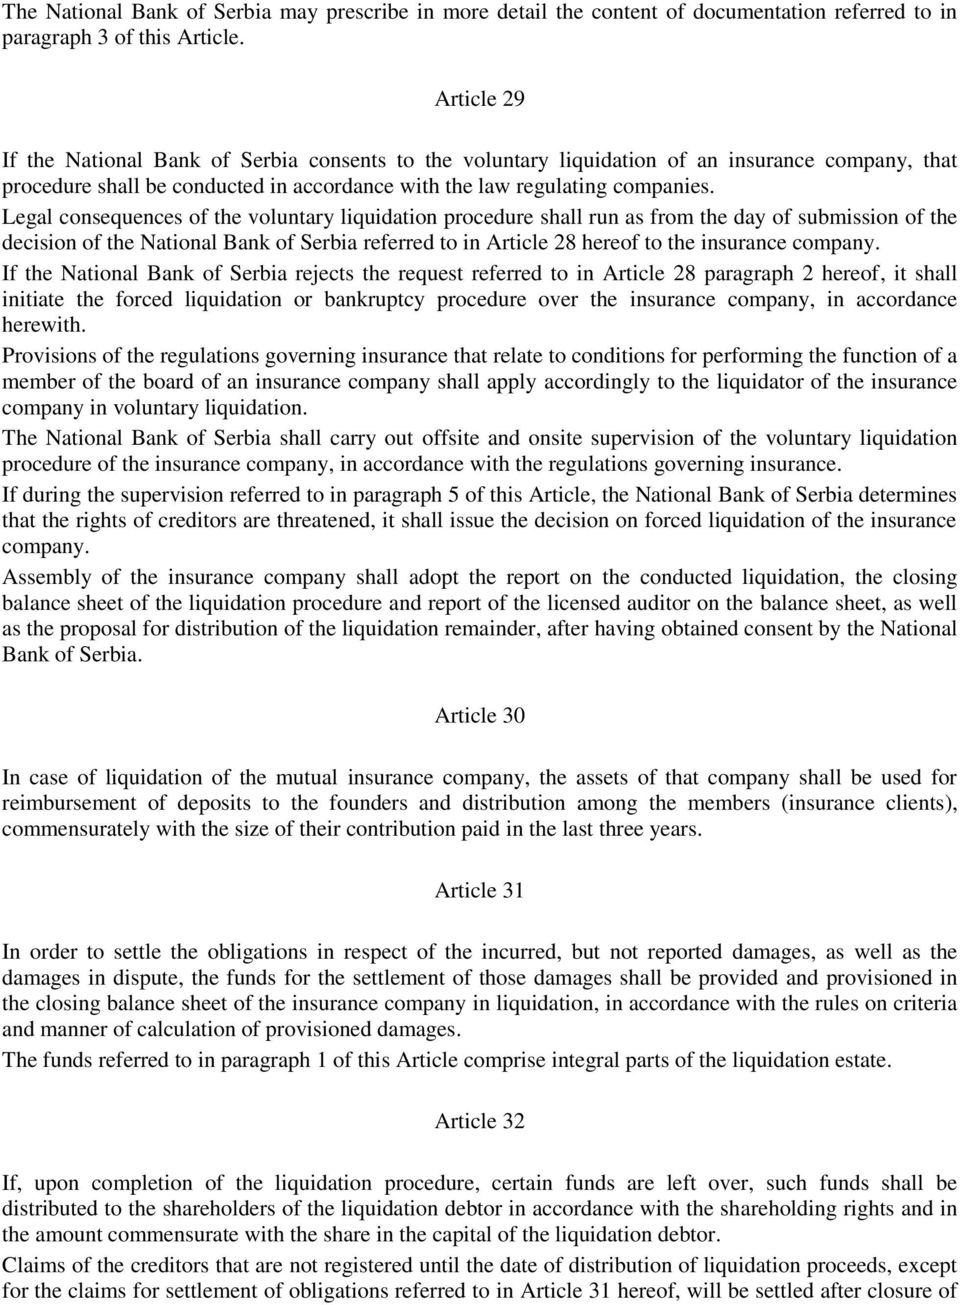 Legal consequences of the voluntary liquidation procedure shall run as from the day of submission of the decision of the National Bank of Serbia referred to in Article 28 hereof to the insurance